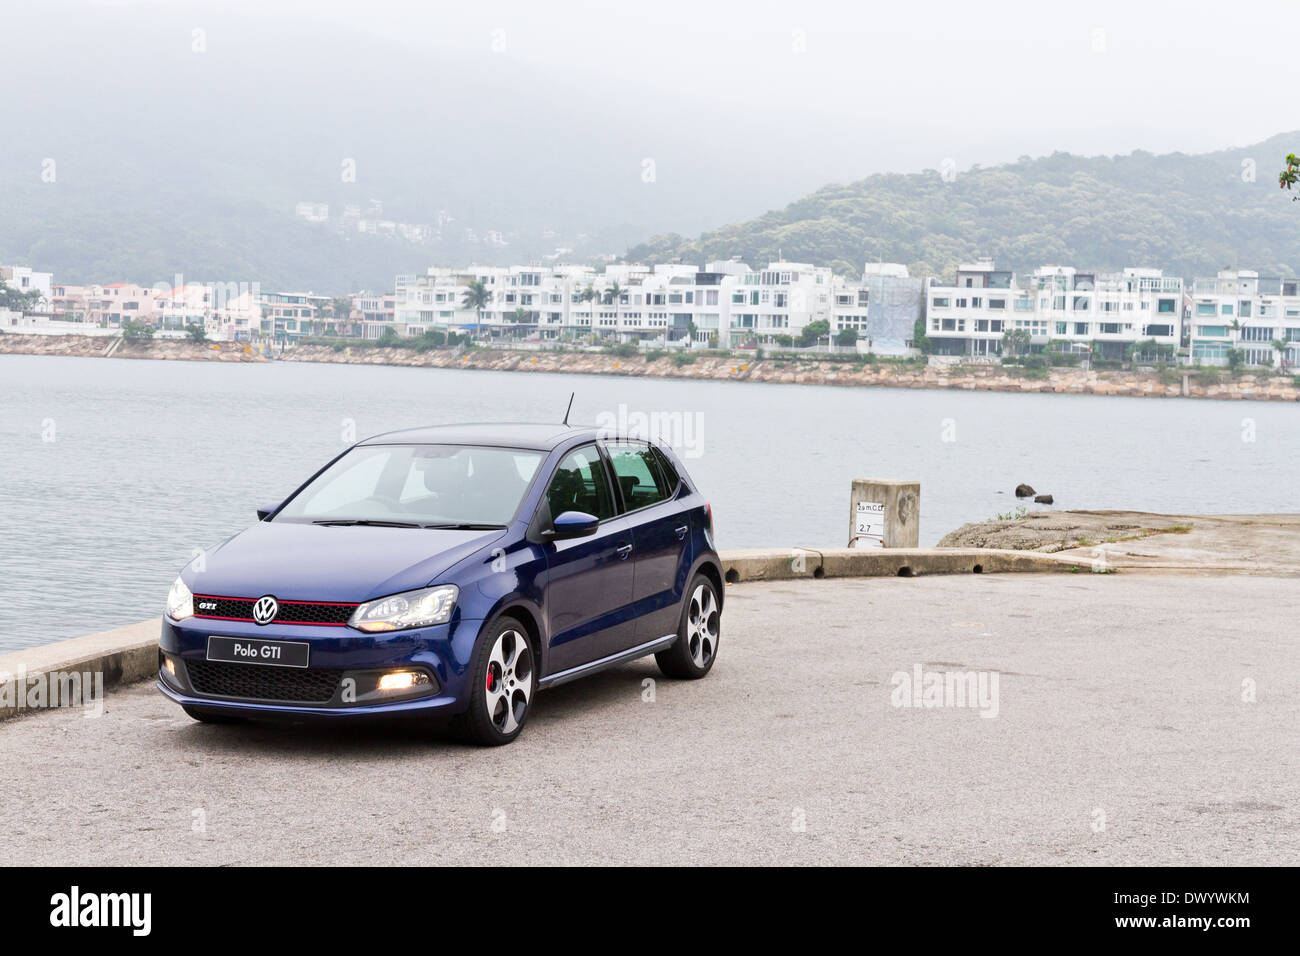 Volkswagen Polo Gti 2013 Model With Blue Colour Stock Photo Alamy